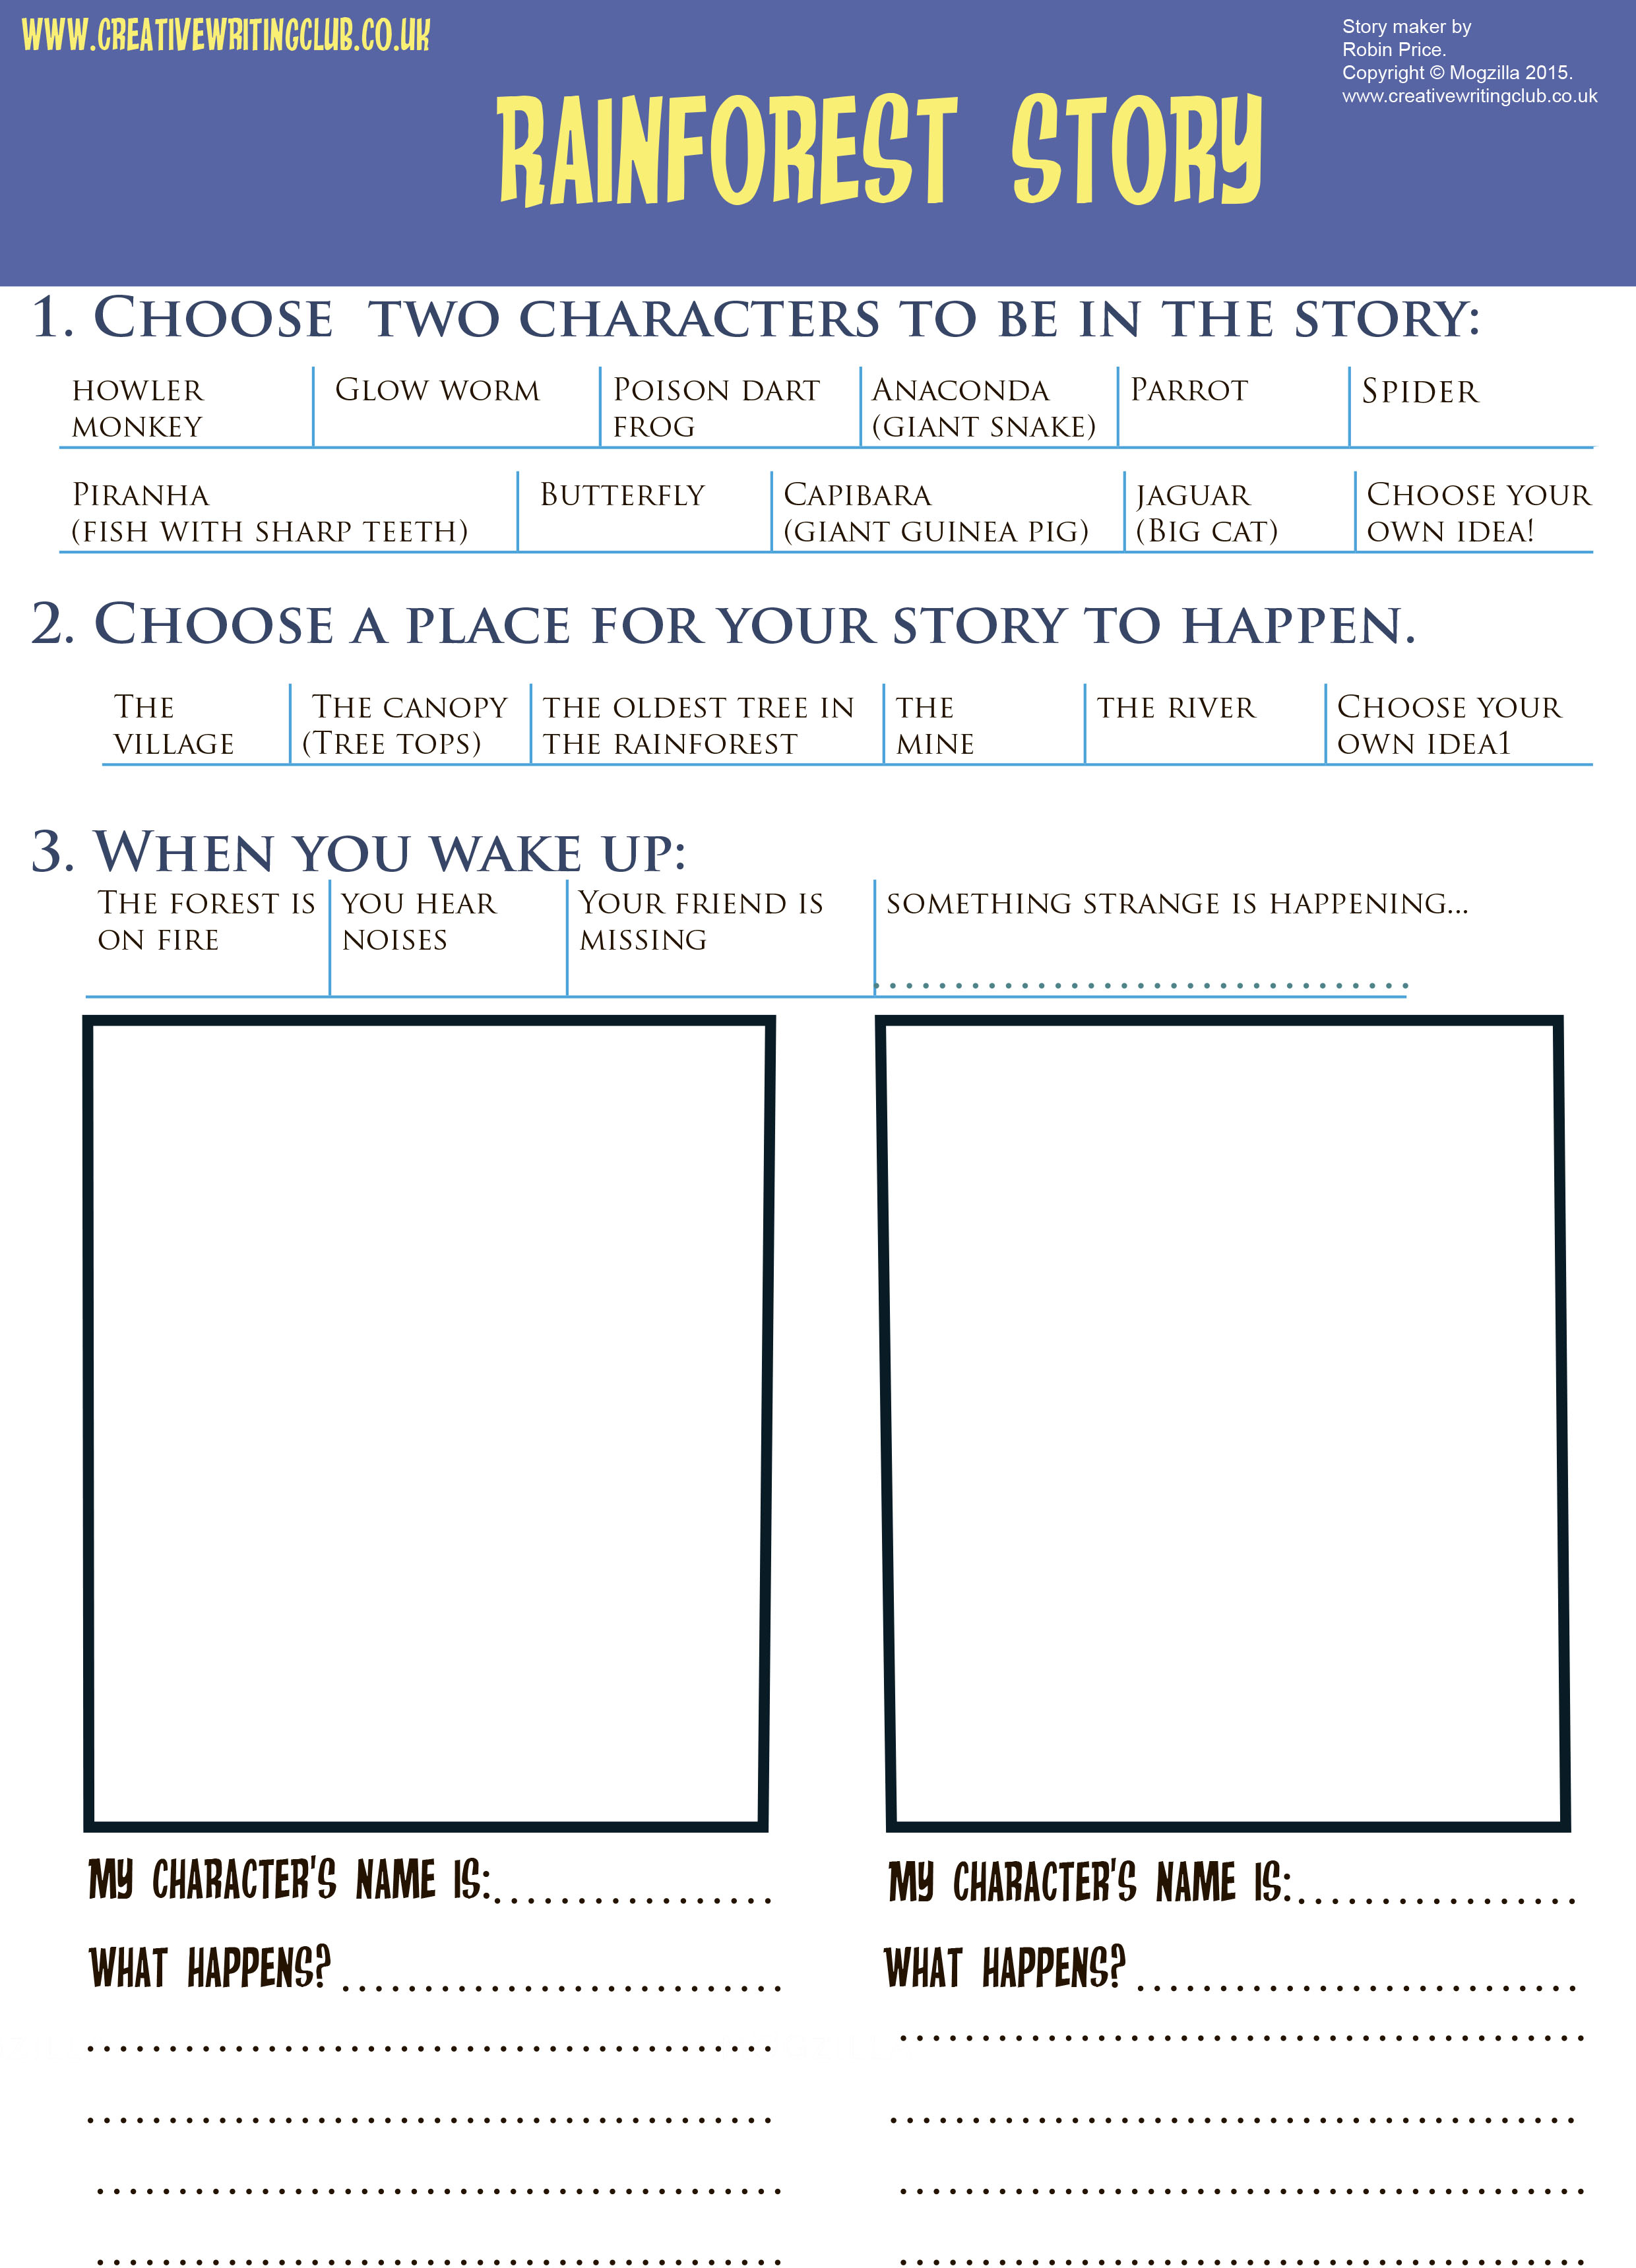 Download a writing frame to print